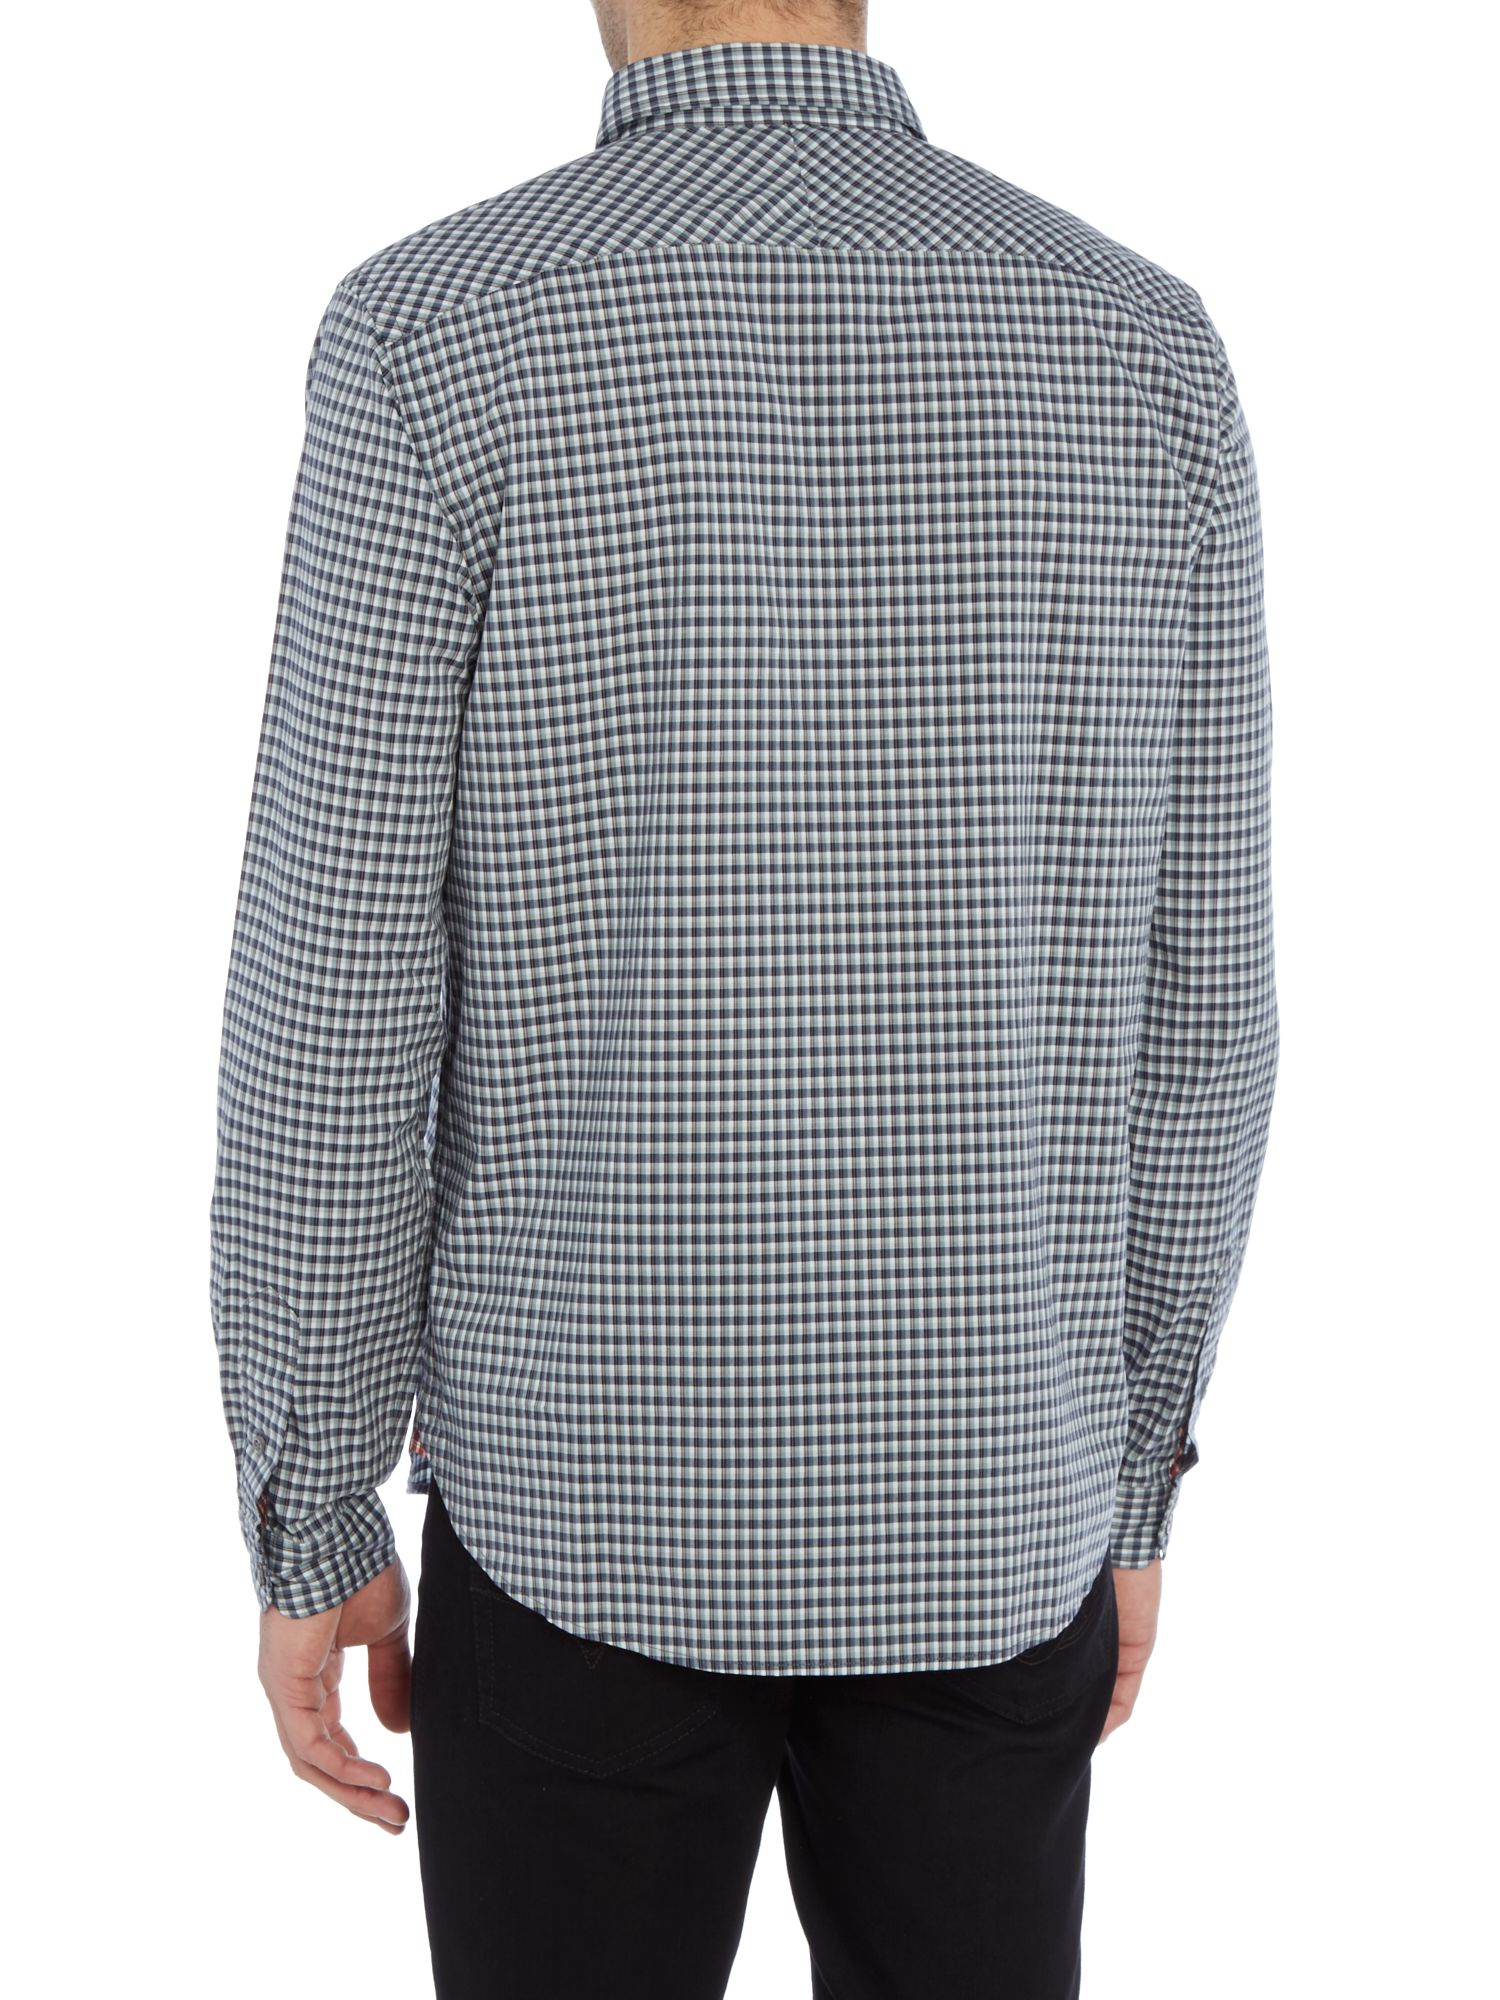 Paul Smith Tailored Fit Micro Check Shirt in Navy (Blue) for Men